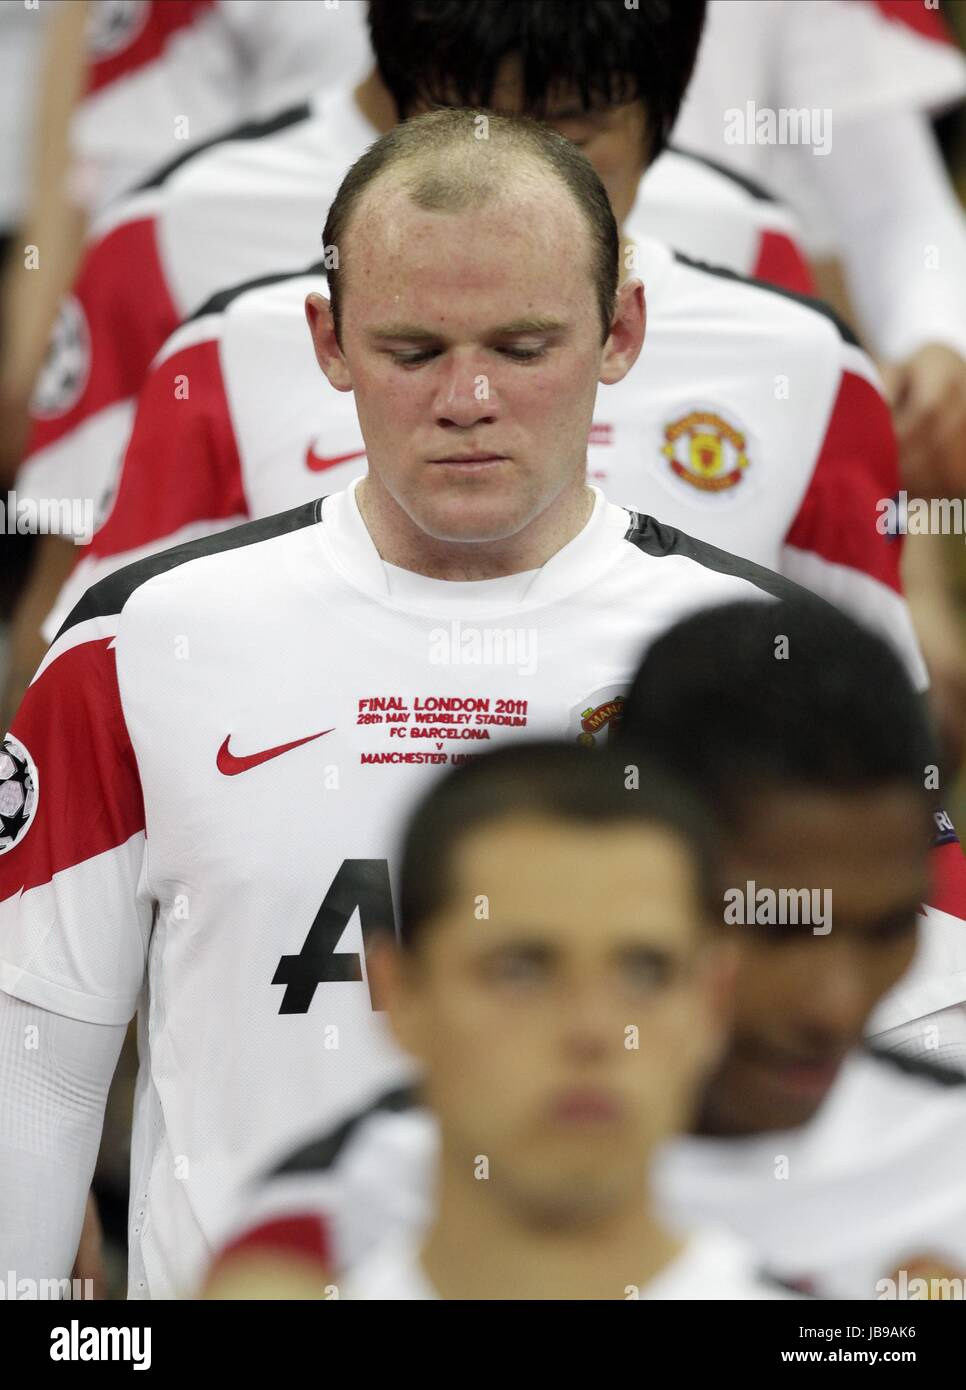 A TEARFUL WAYNE ROONEY, FC BARCELONA V MANCHESTER UTD, UEFA CHAMPIONS LEAGUE FINAL 2011, 2011 - Stock Image